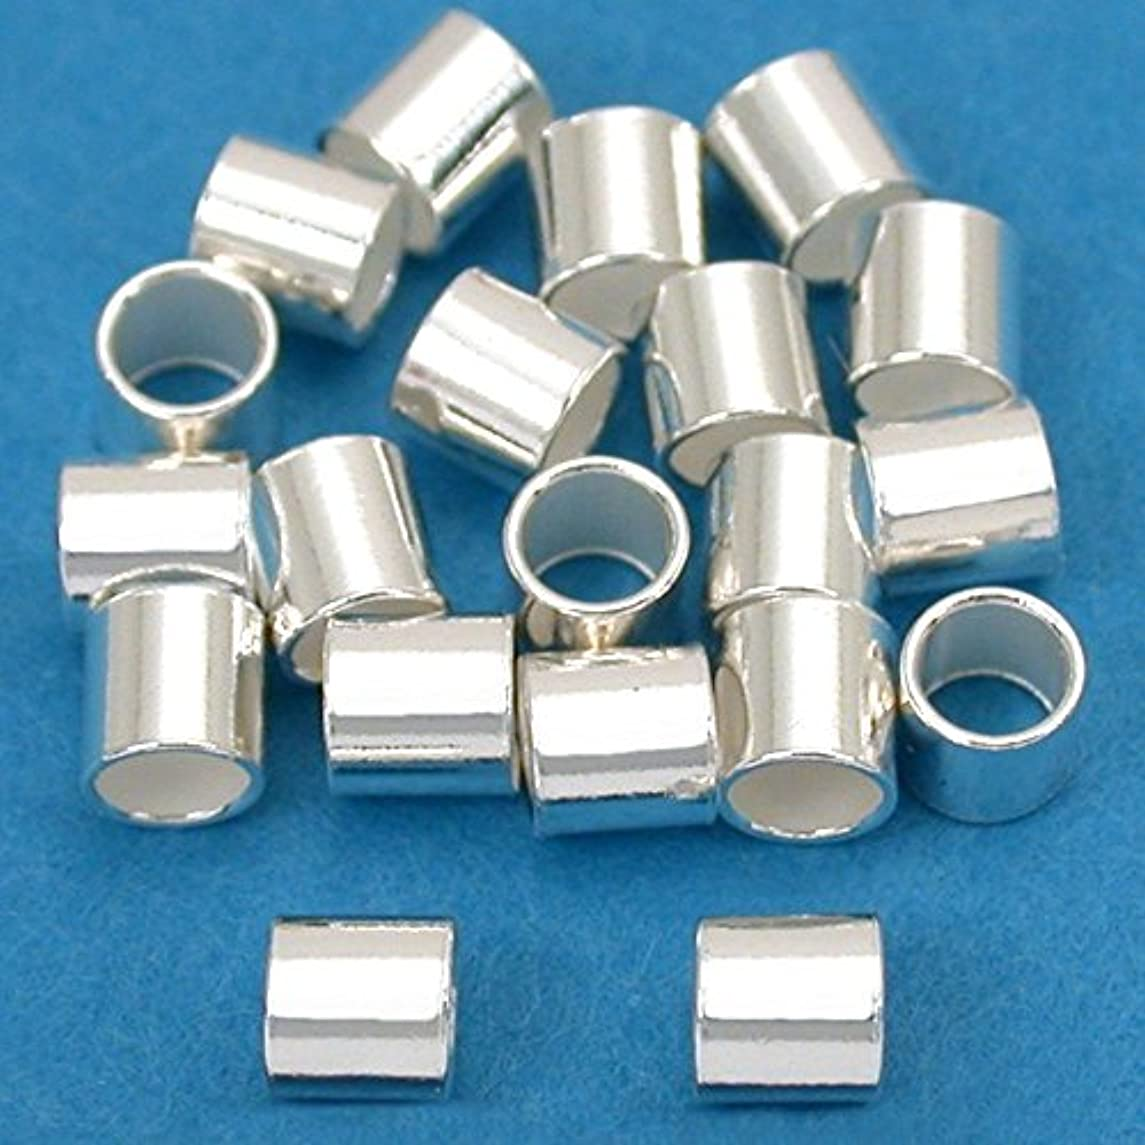 20 Large Sterling Silver Crimp Beads Tube Jewelry 3x3mm